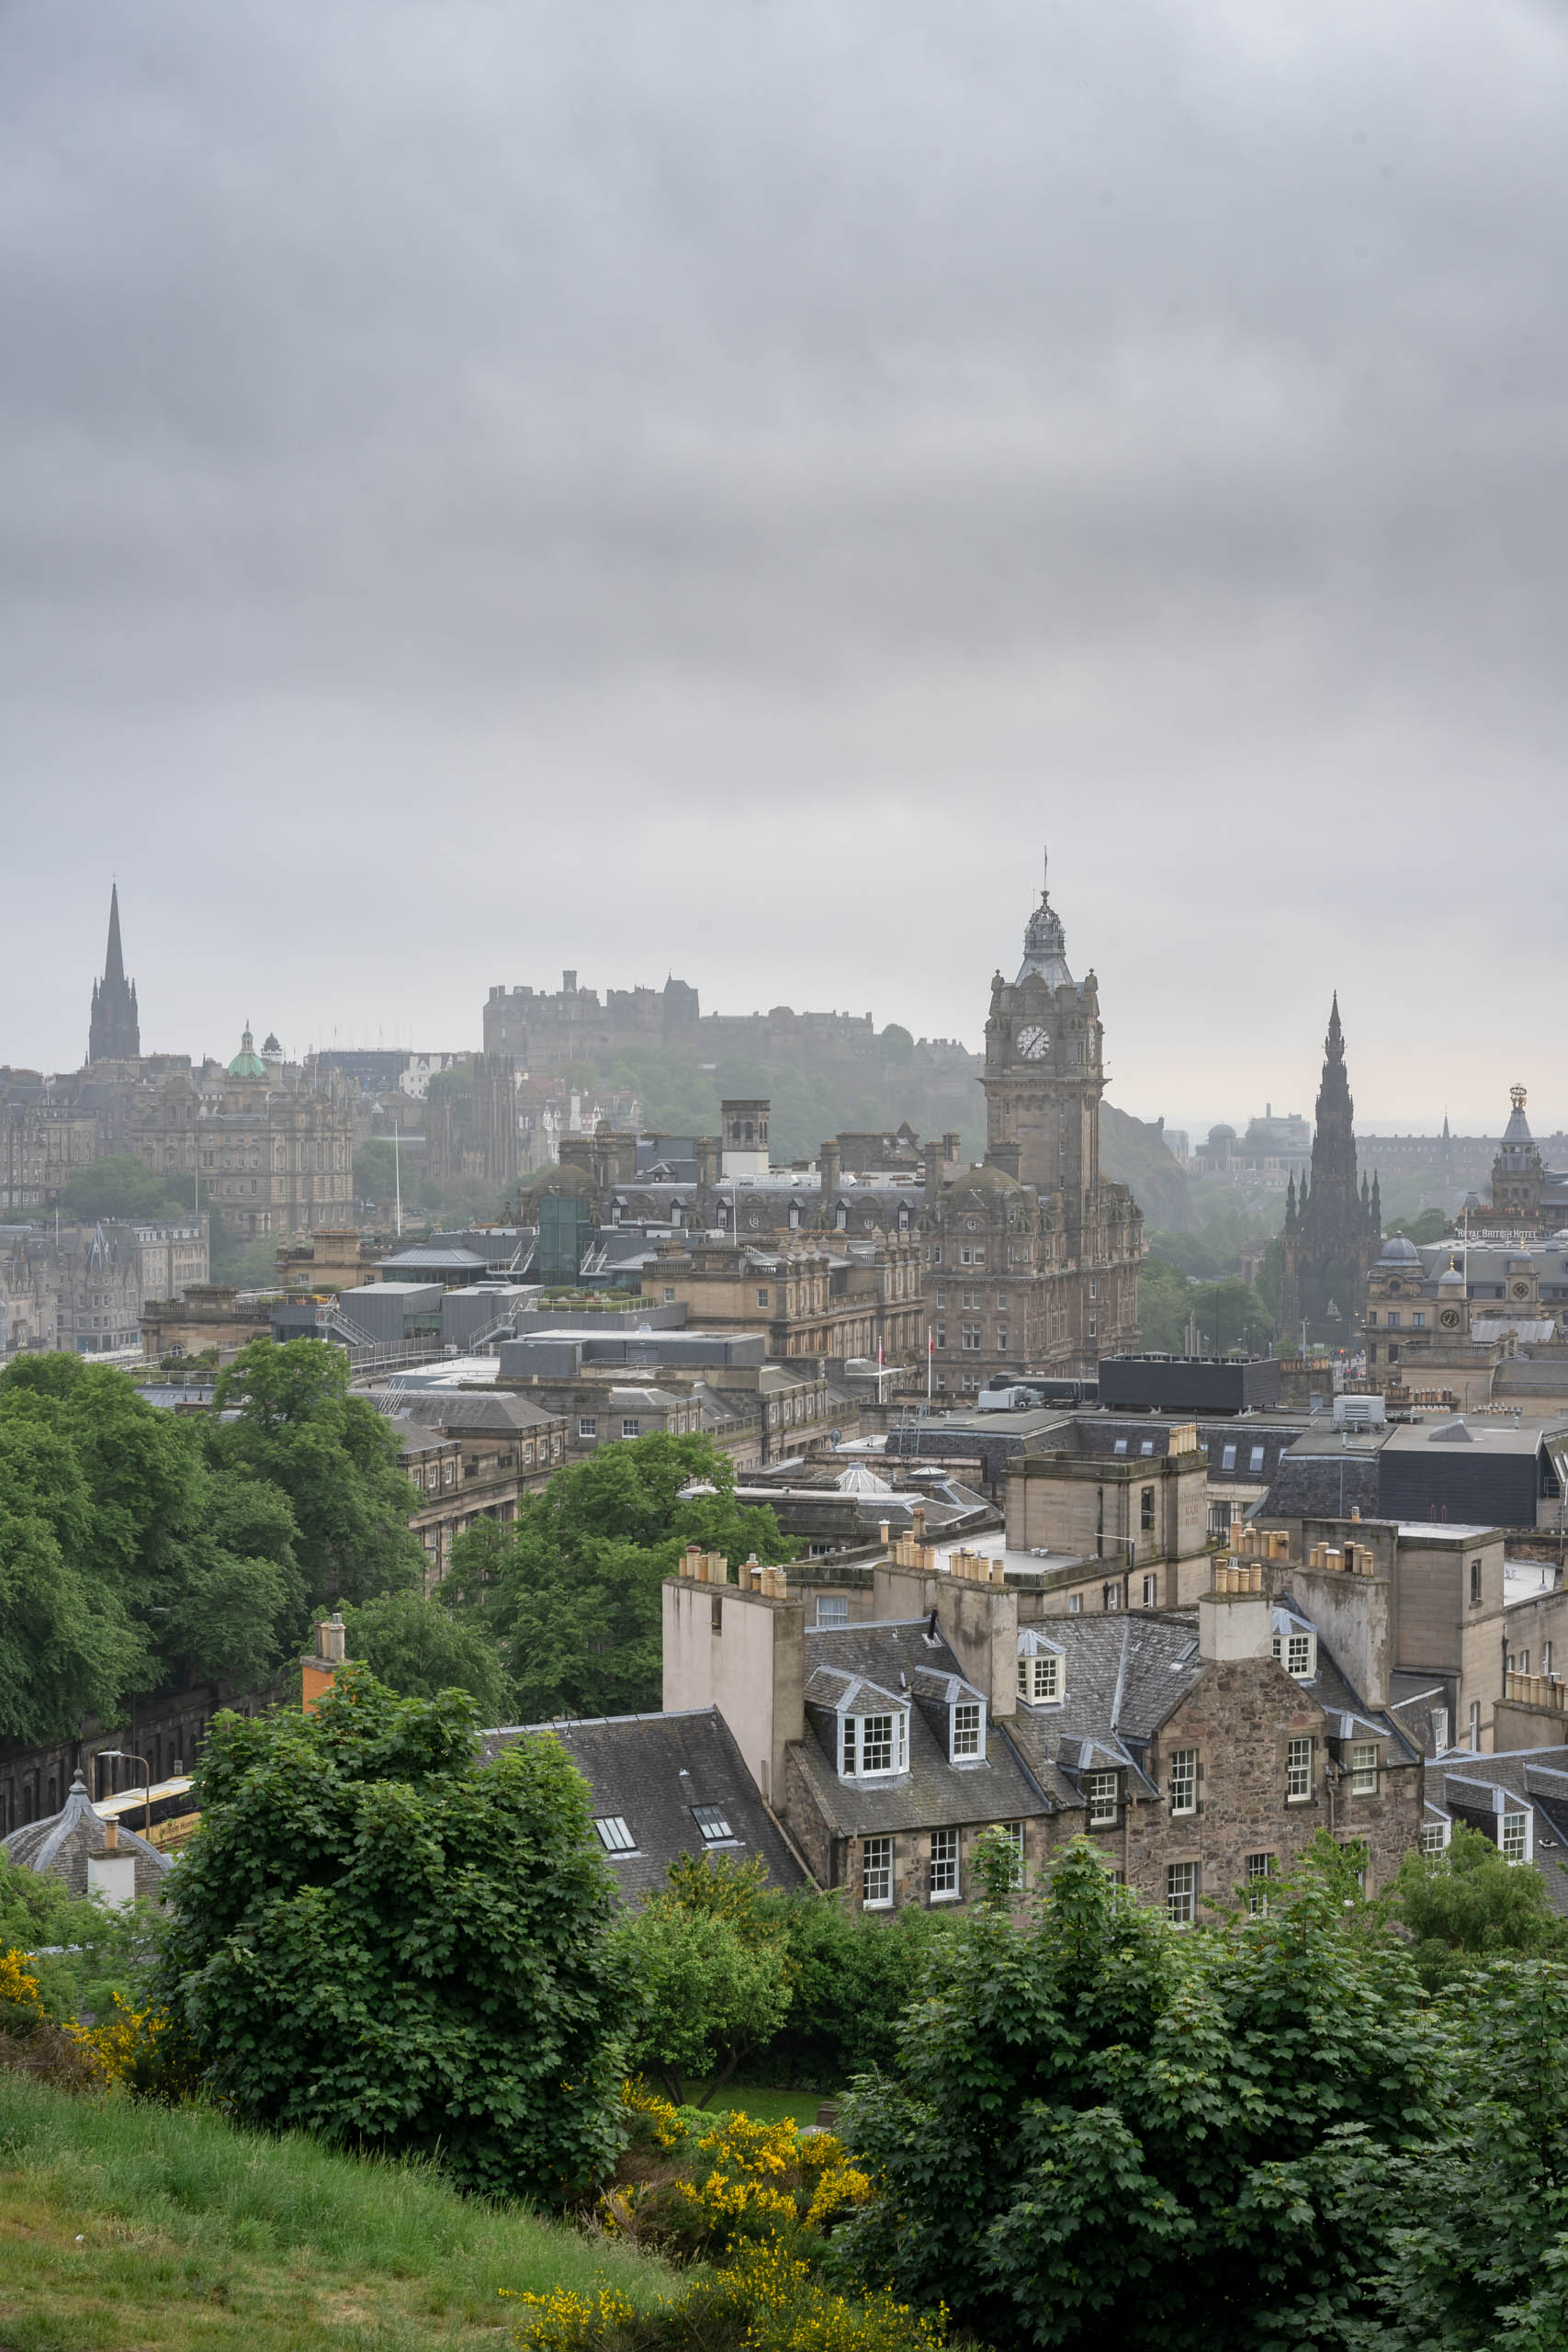 View from Calton Hill | f/13 1/60sec ISO-200 55mm  | ILCE-7M2